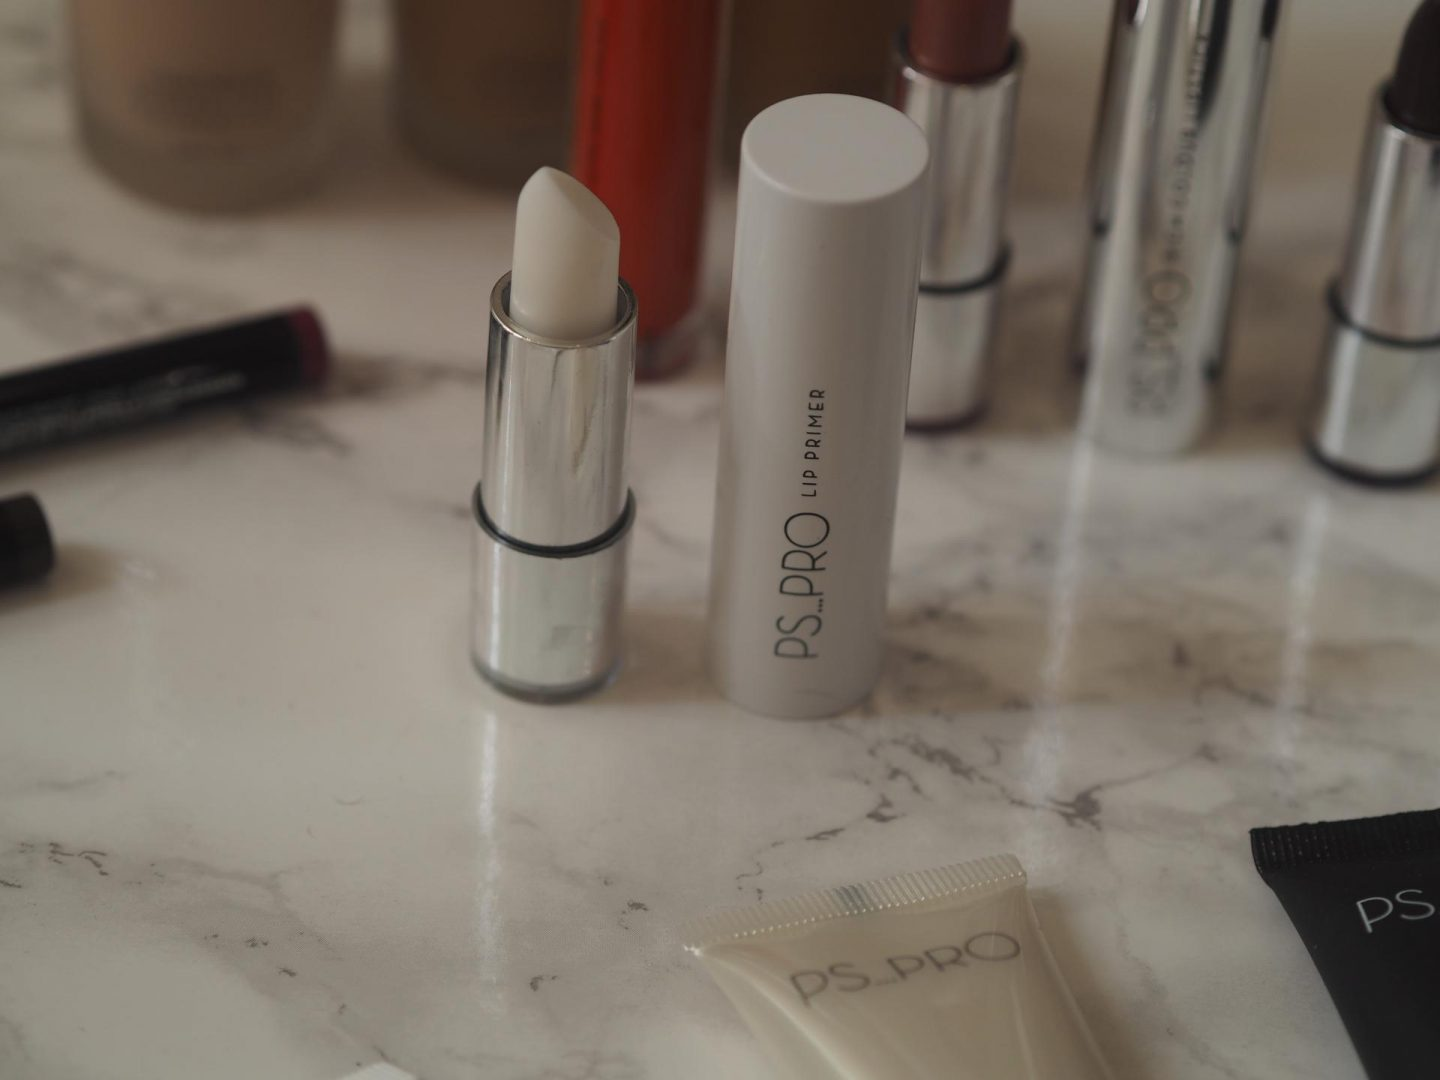 Primark PS Pro - Products: Lip Primer